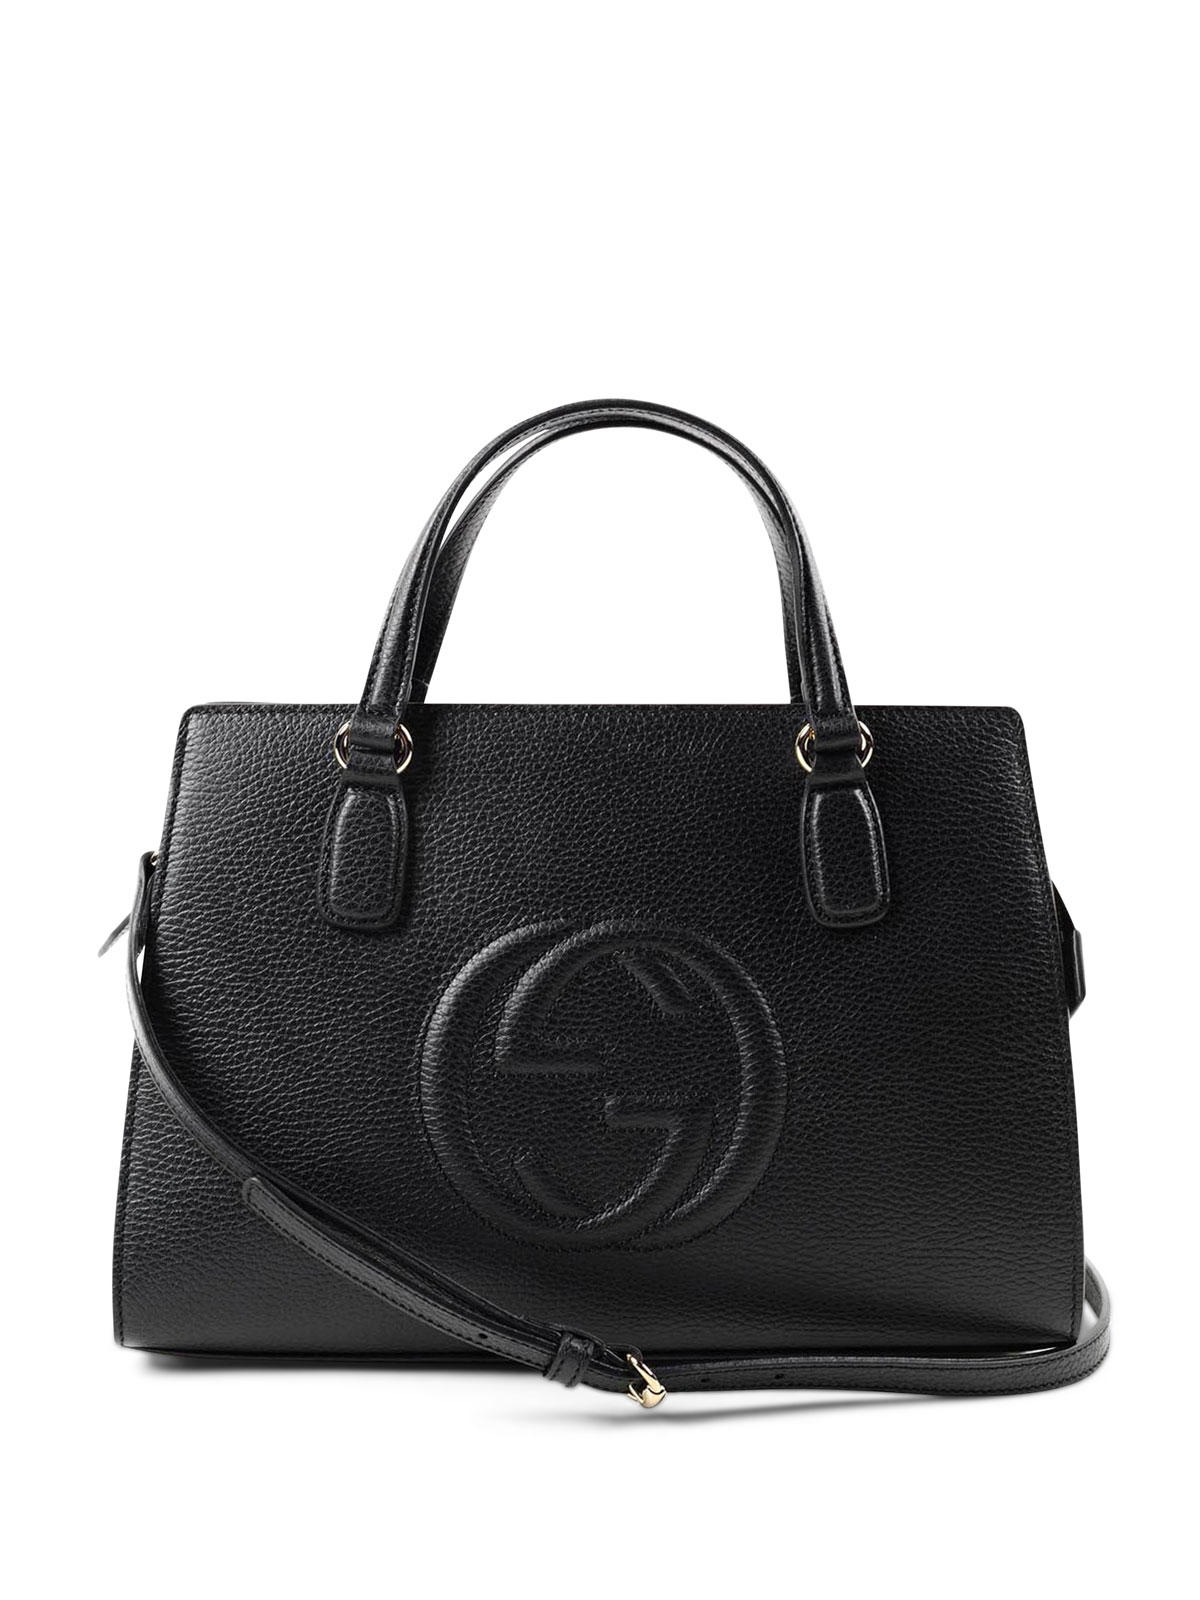 soho leather handbag by gucci bowling bags ikrix. Black Bedroom Furniture Sets. Home Design Ideas